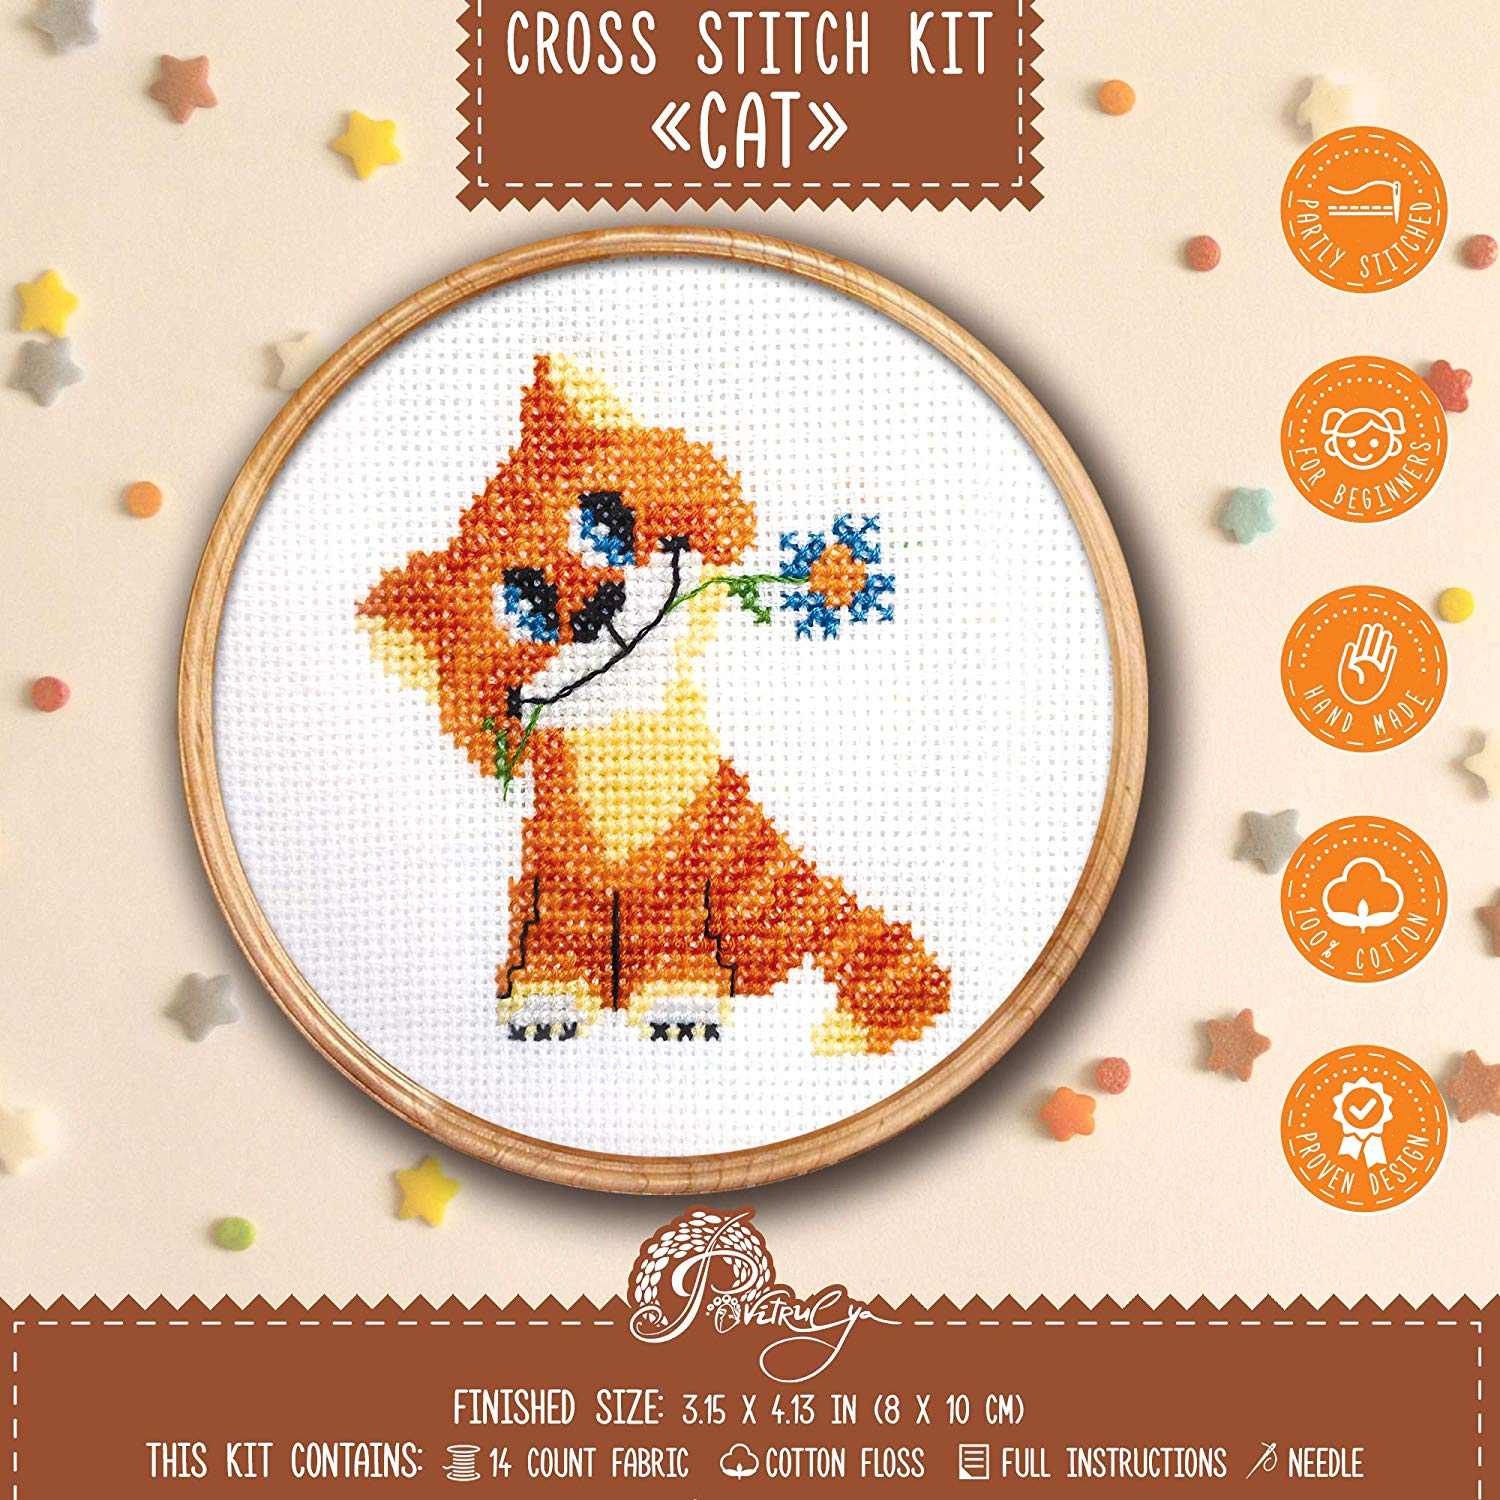 Povitrulya Cat Cross Stitch Kit for Beginners